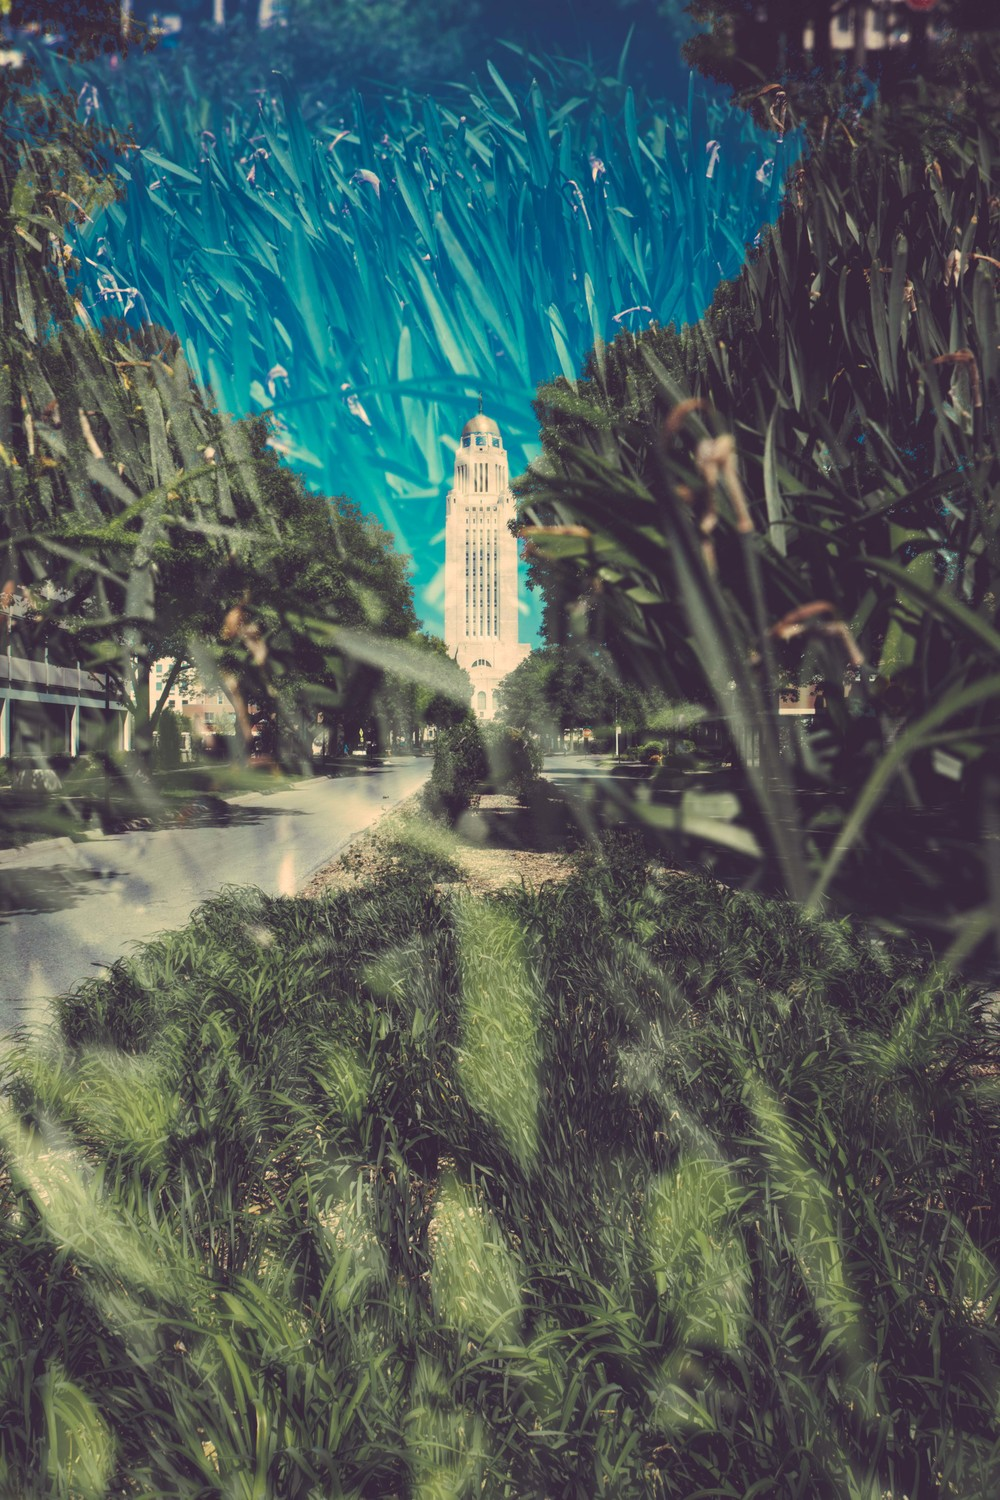 Nebraska Capital Building. Double Exposure. $15 for 8.5x11. $25 for 16x20. $35 for 17x22.